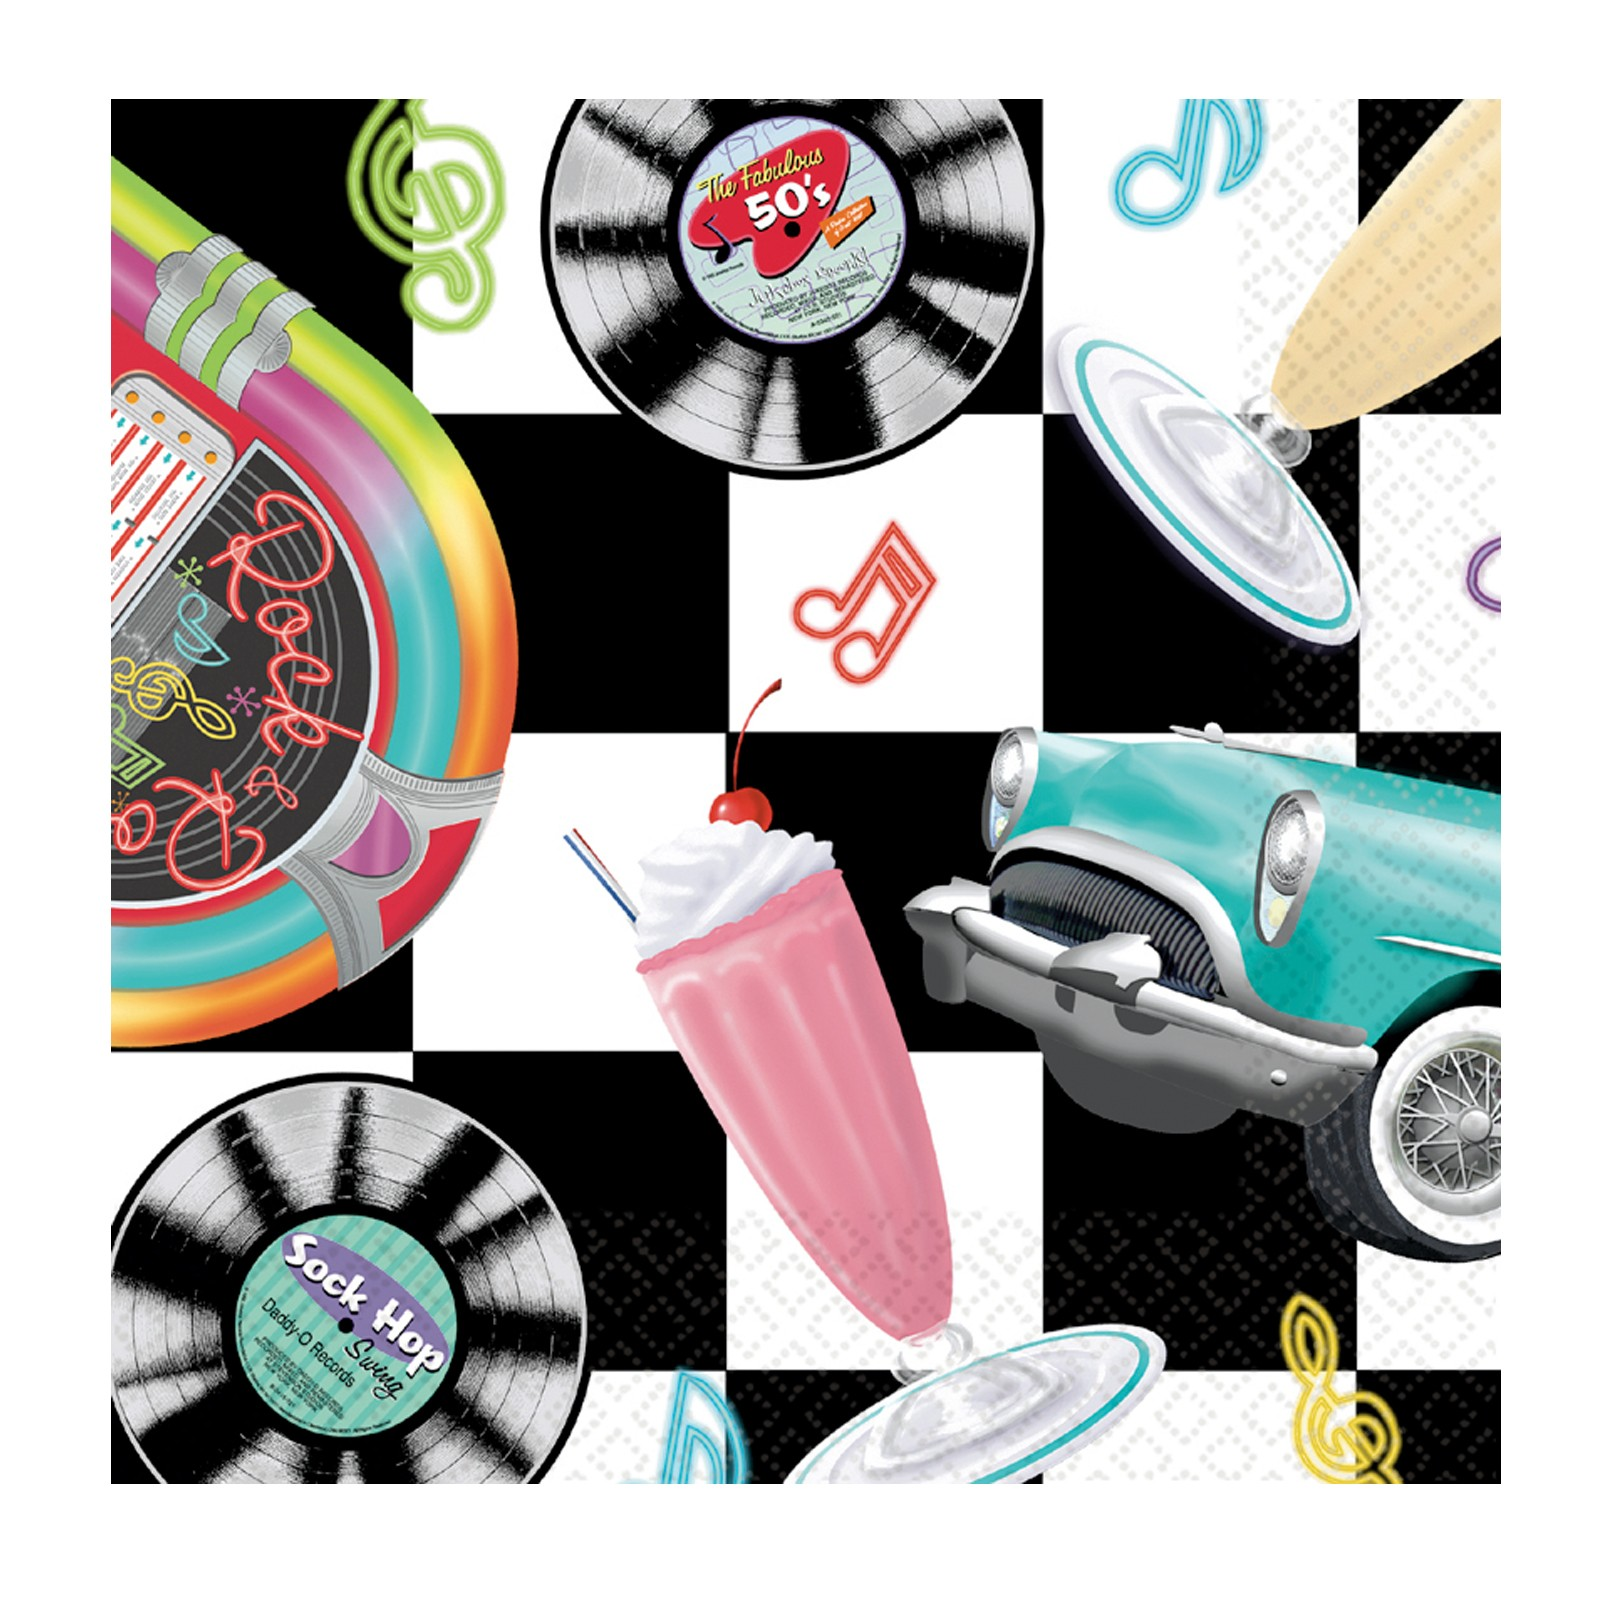 sock hop images cliparts co sock hop clip art 1200x300 50s Clip Art